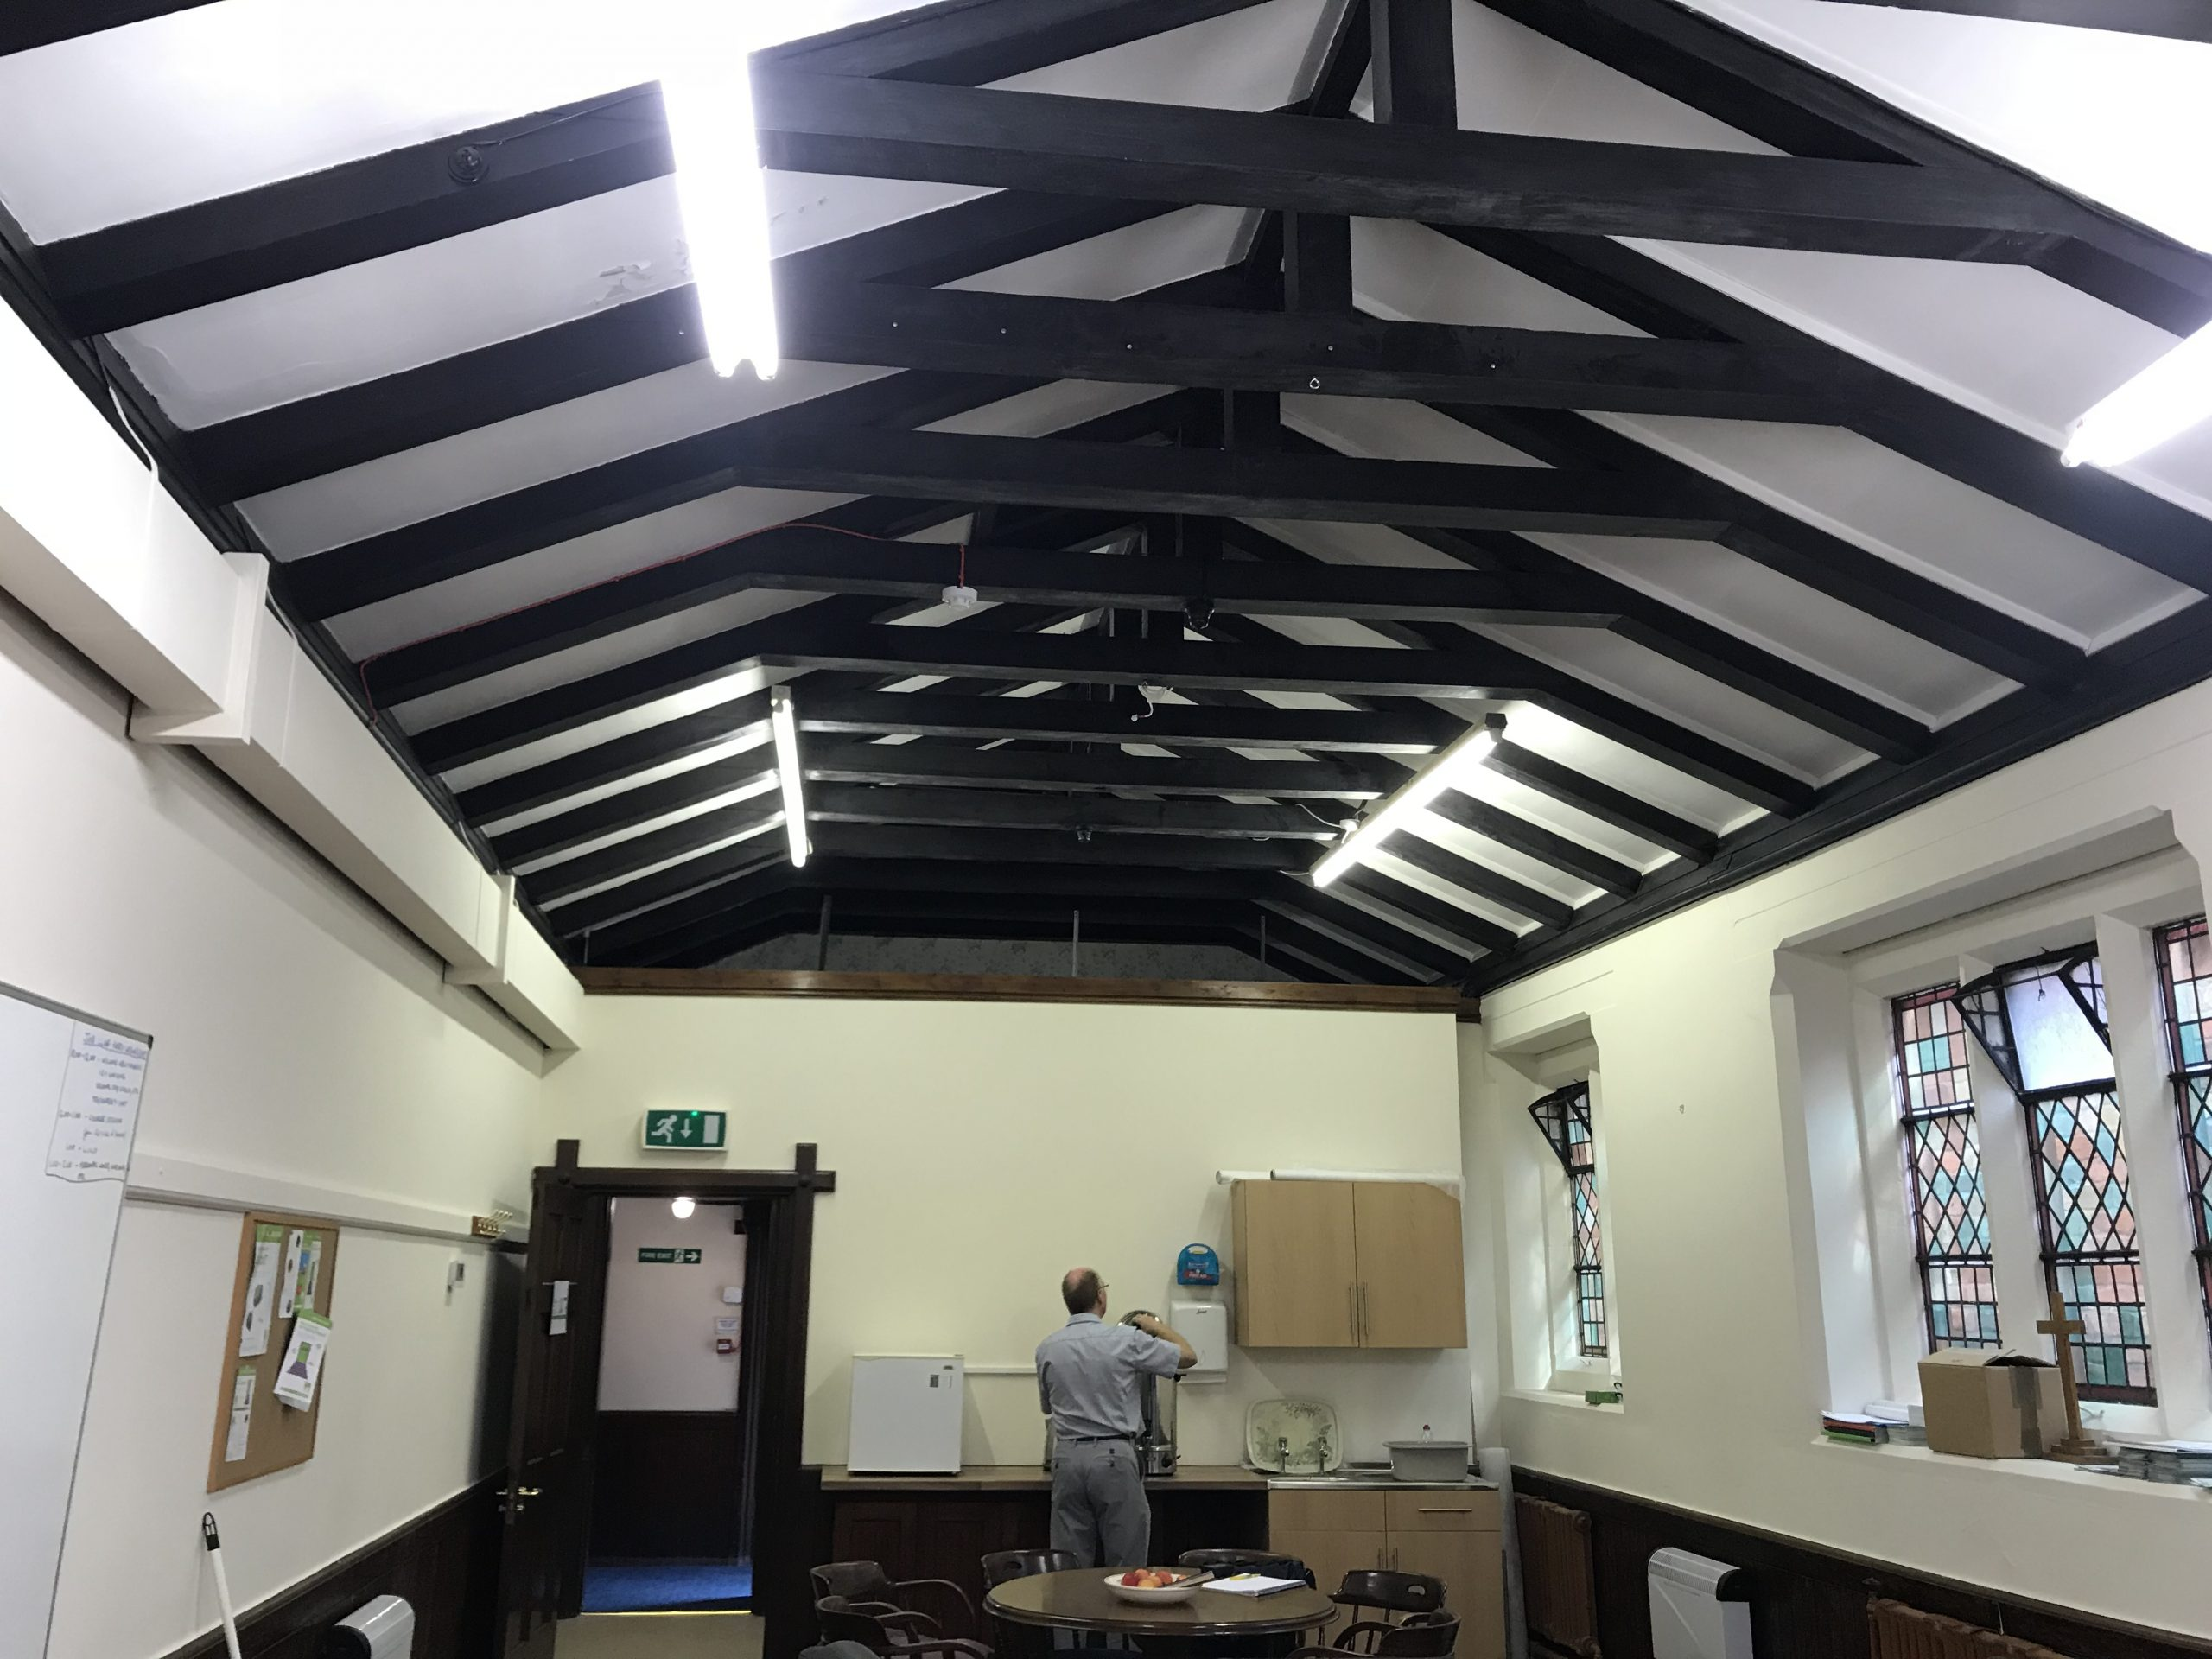 Commercial Suspended Ceilings | DGR Building Maintenance